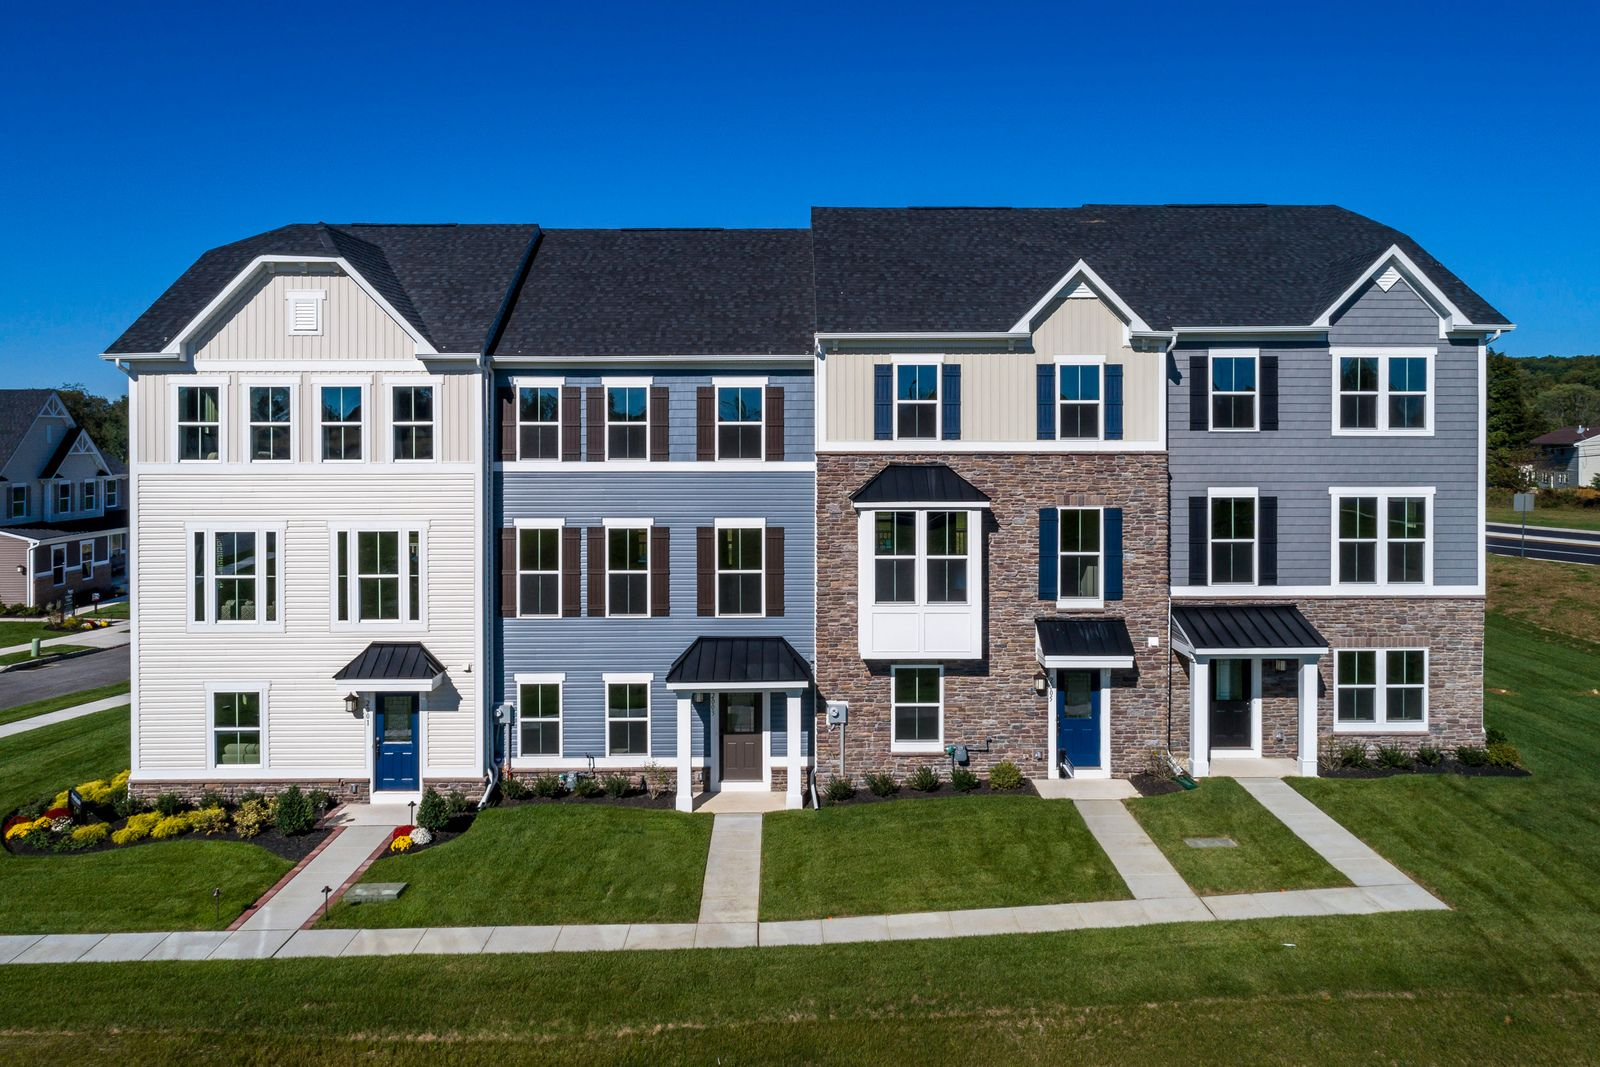 Welcome to Mapleview:Lowest priced new townhomes with low HOA fees in Downingtown schools, walkable to township park, minutes from commuter routes.Click here to schedule your visit today!